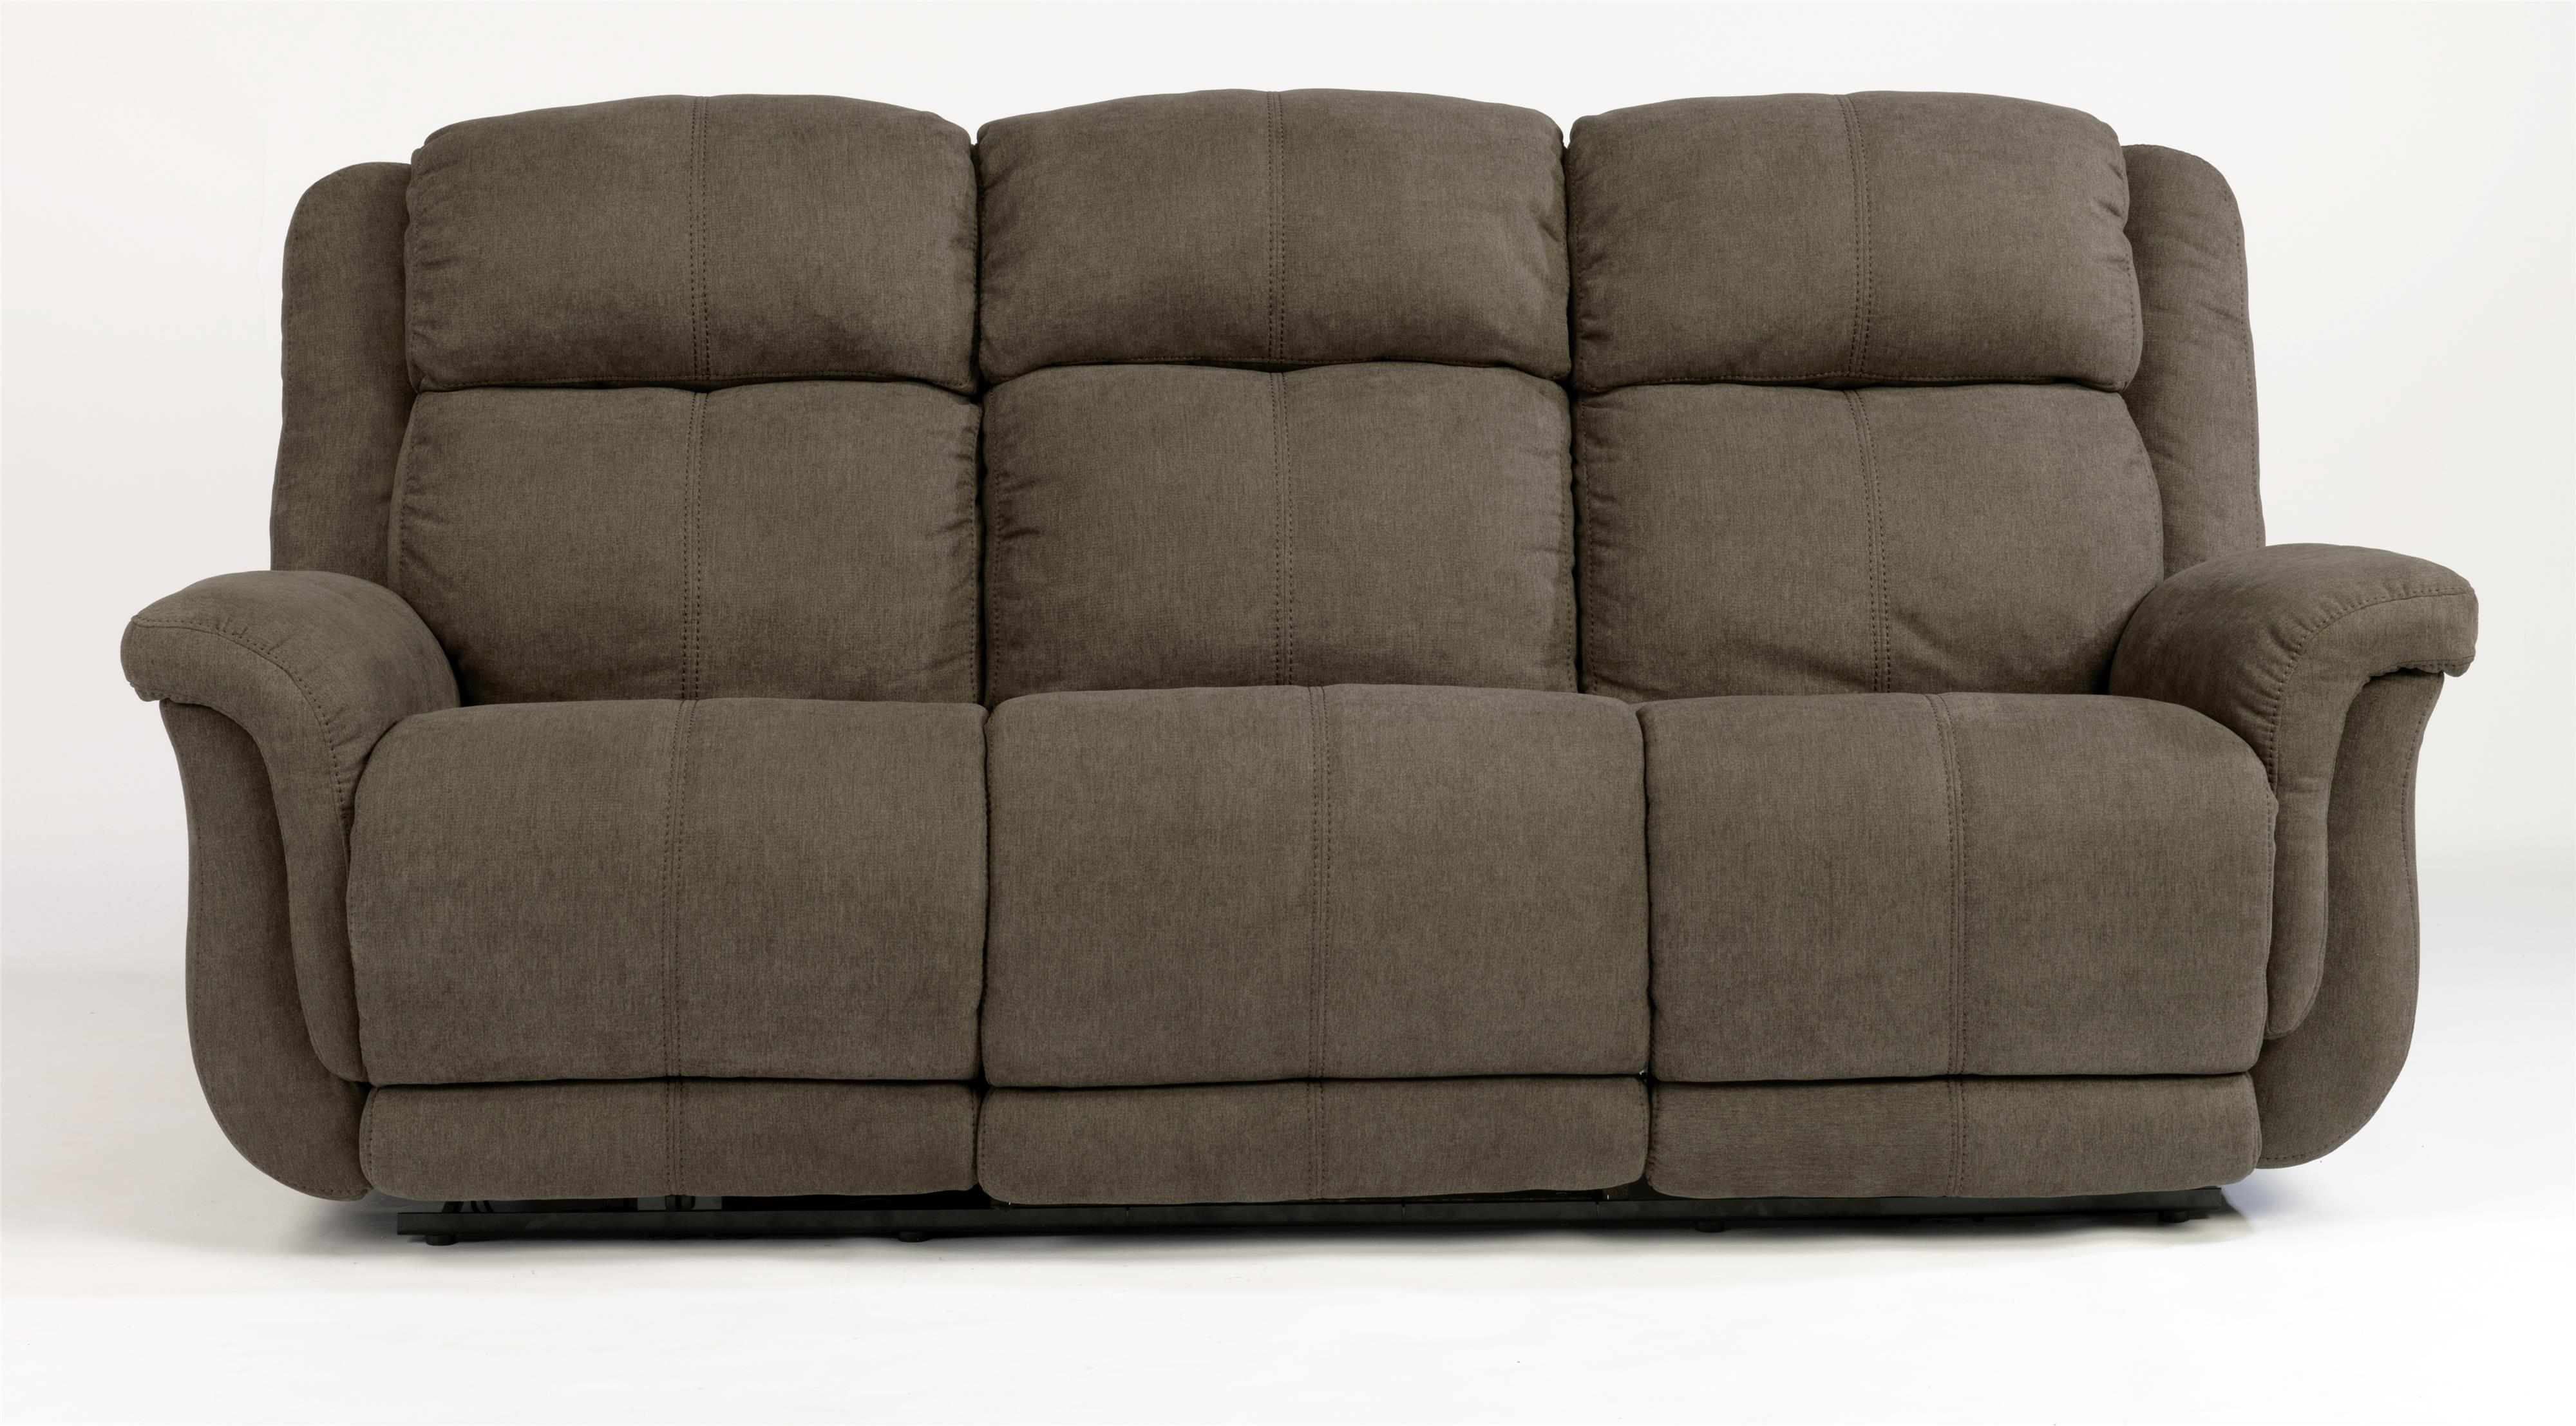 Flexsteel Latitudes-Brookings Power Reclining Sofa - Item Number: F1251-62P-414-02